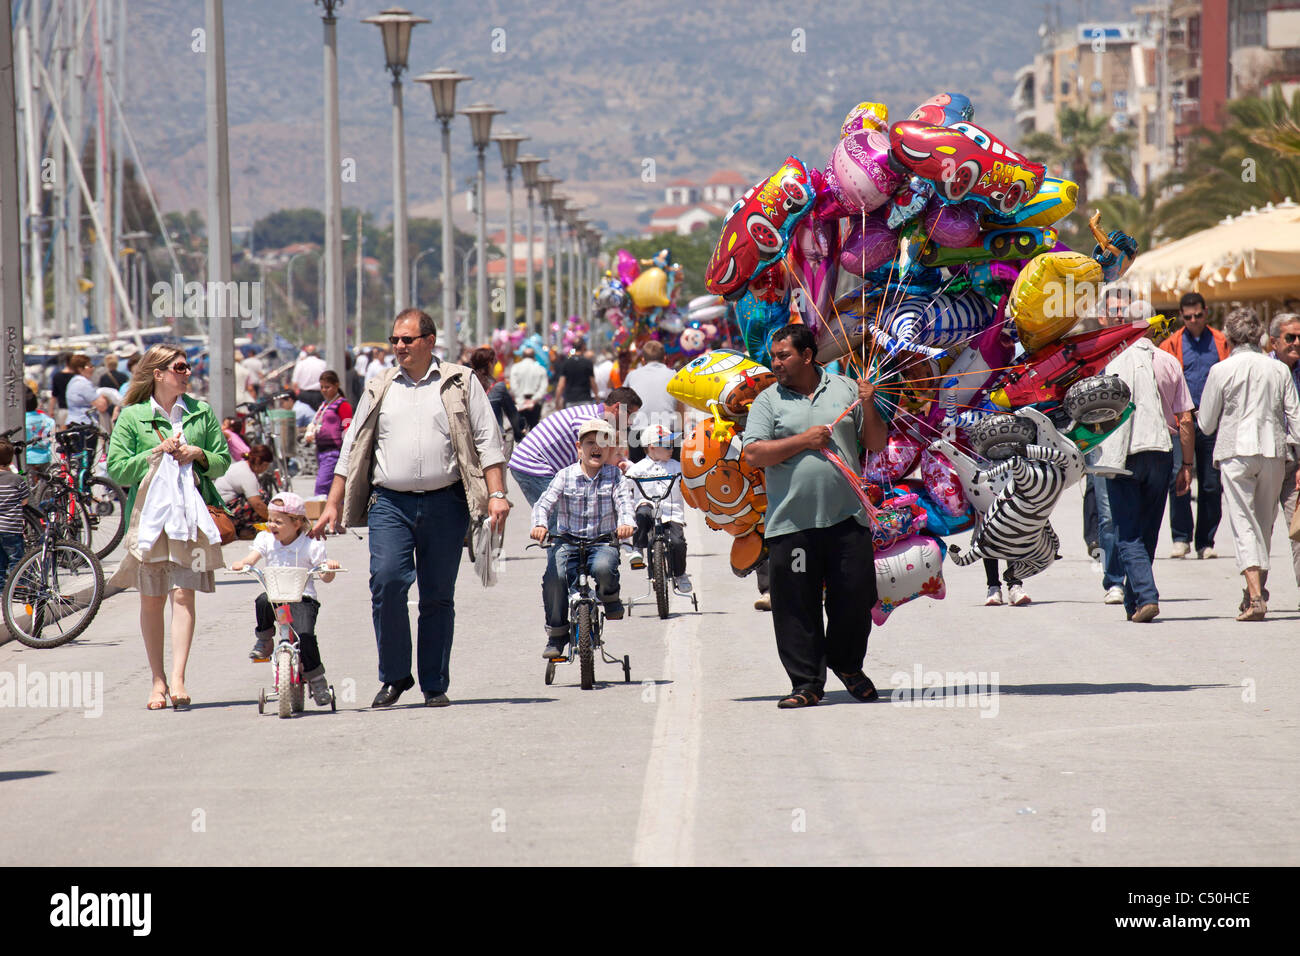 balloon vendor and kids on bicycles on the harbour promenade of the coastal port city Volos, Thessaly, Greece - Stock Image